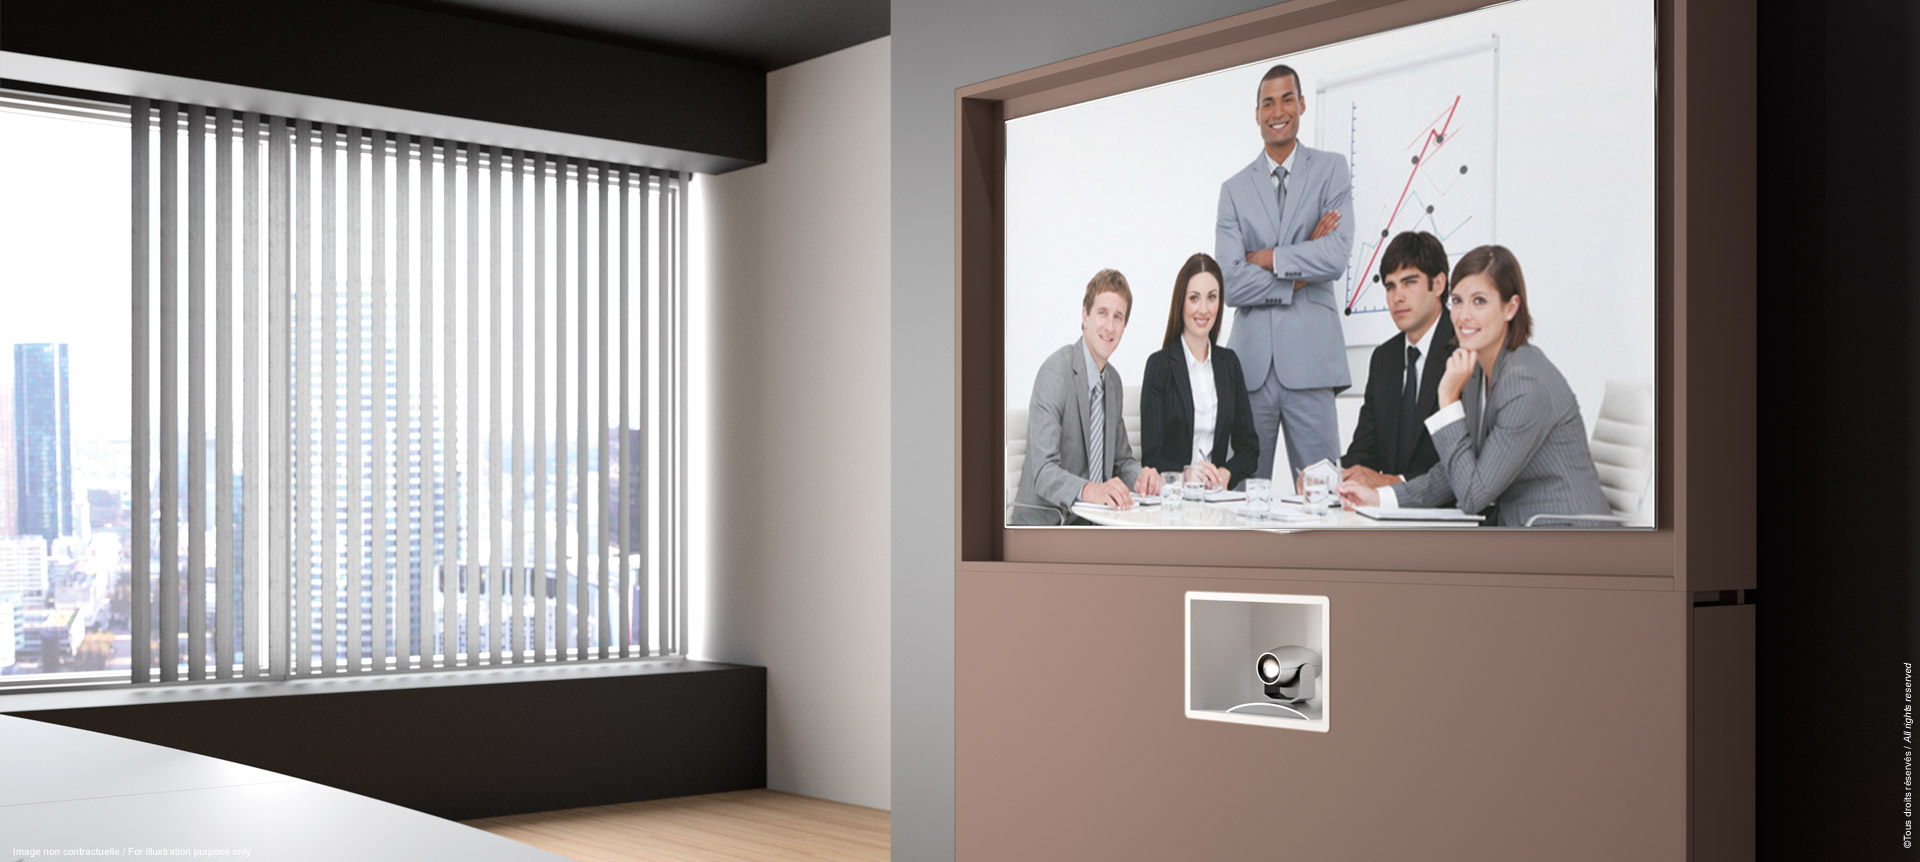 WEMEET REMOTE - Piece of furniture for video-conference room